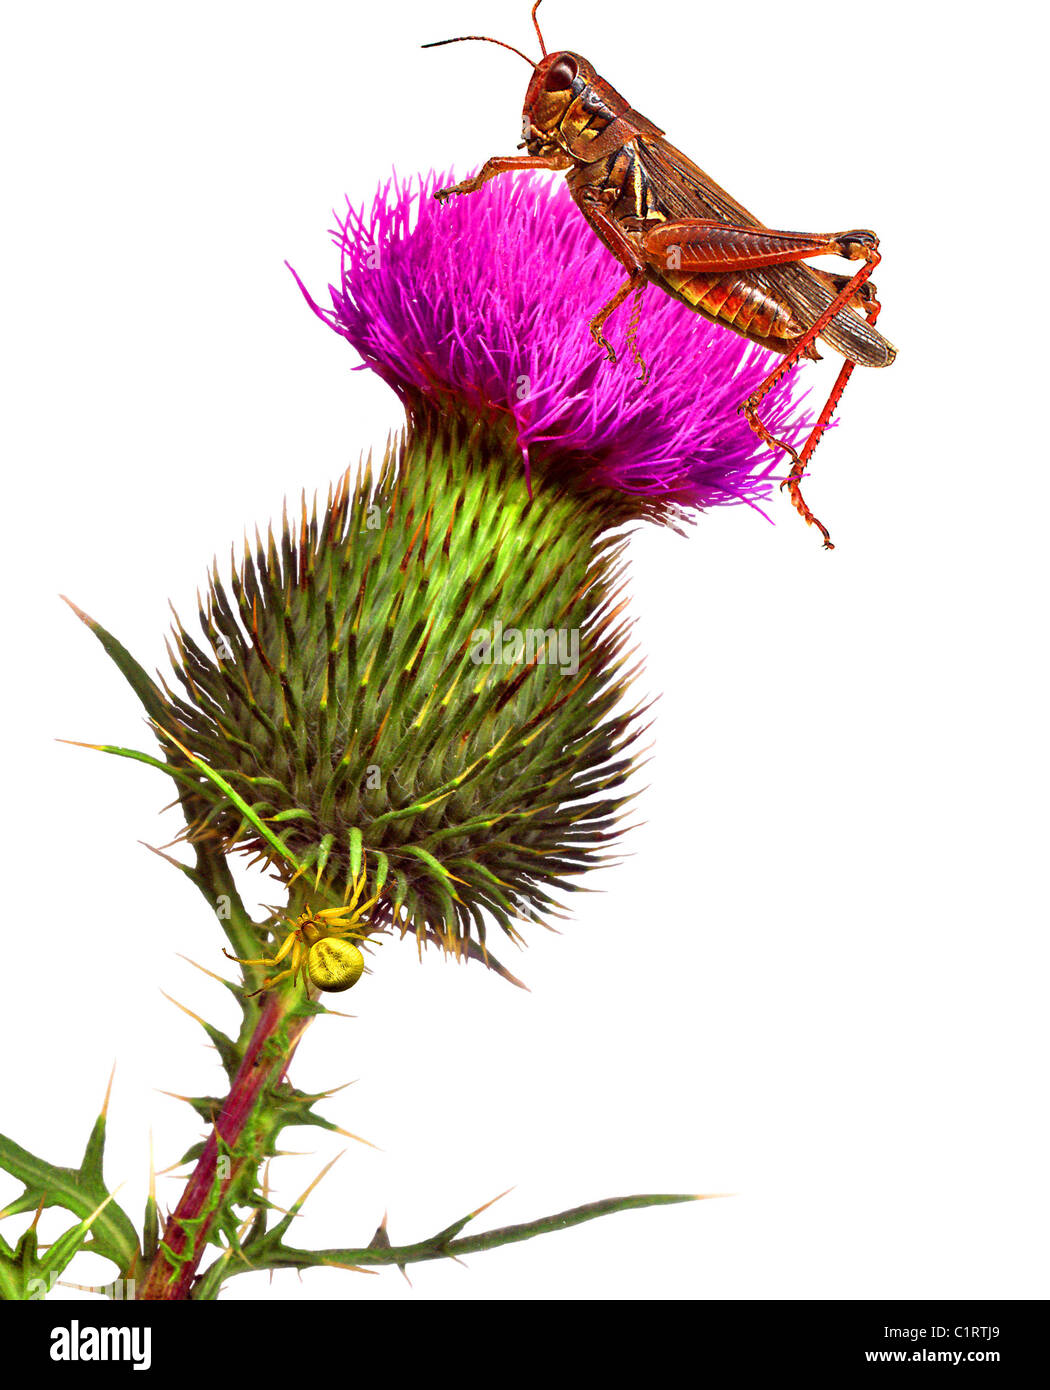 Grasshopper & Spider on Bull Thistle Flower - Illustration created by scanning actual insects & thistle - Stock Image